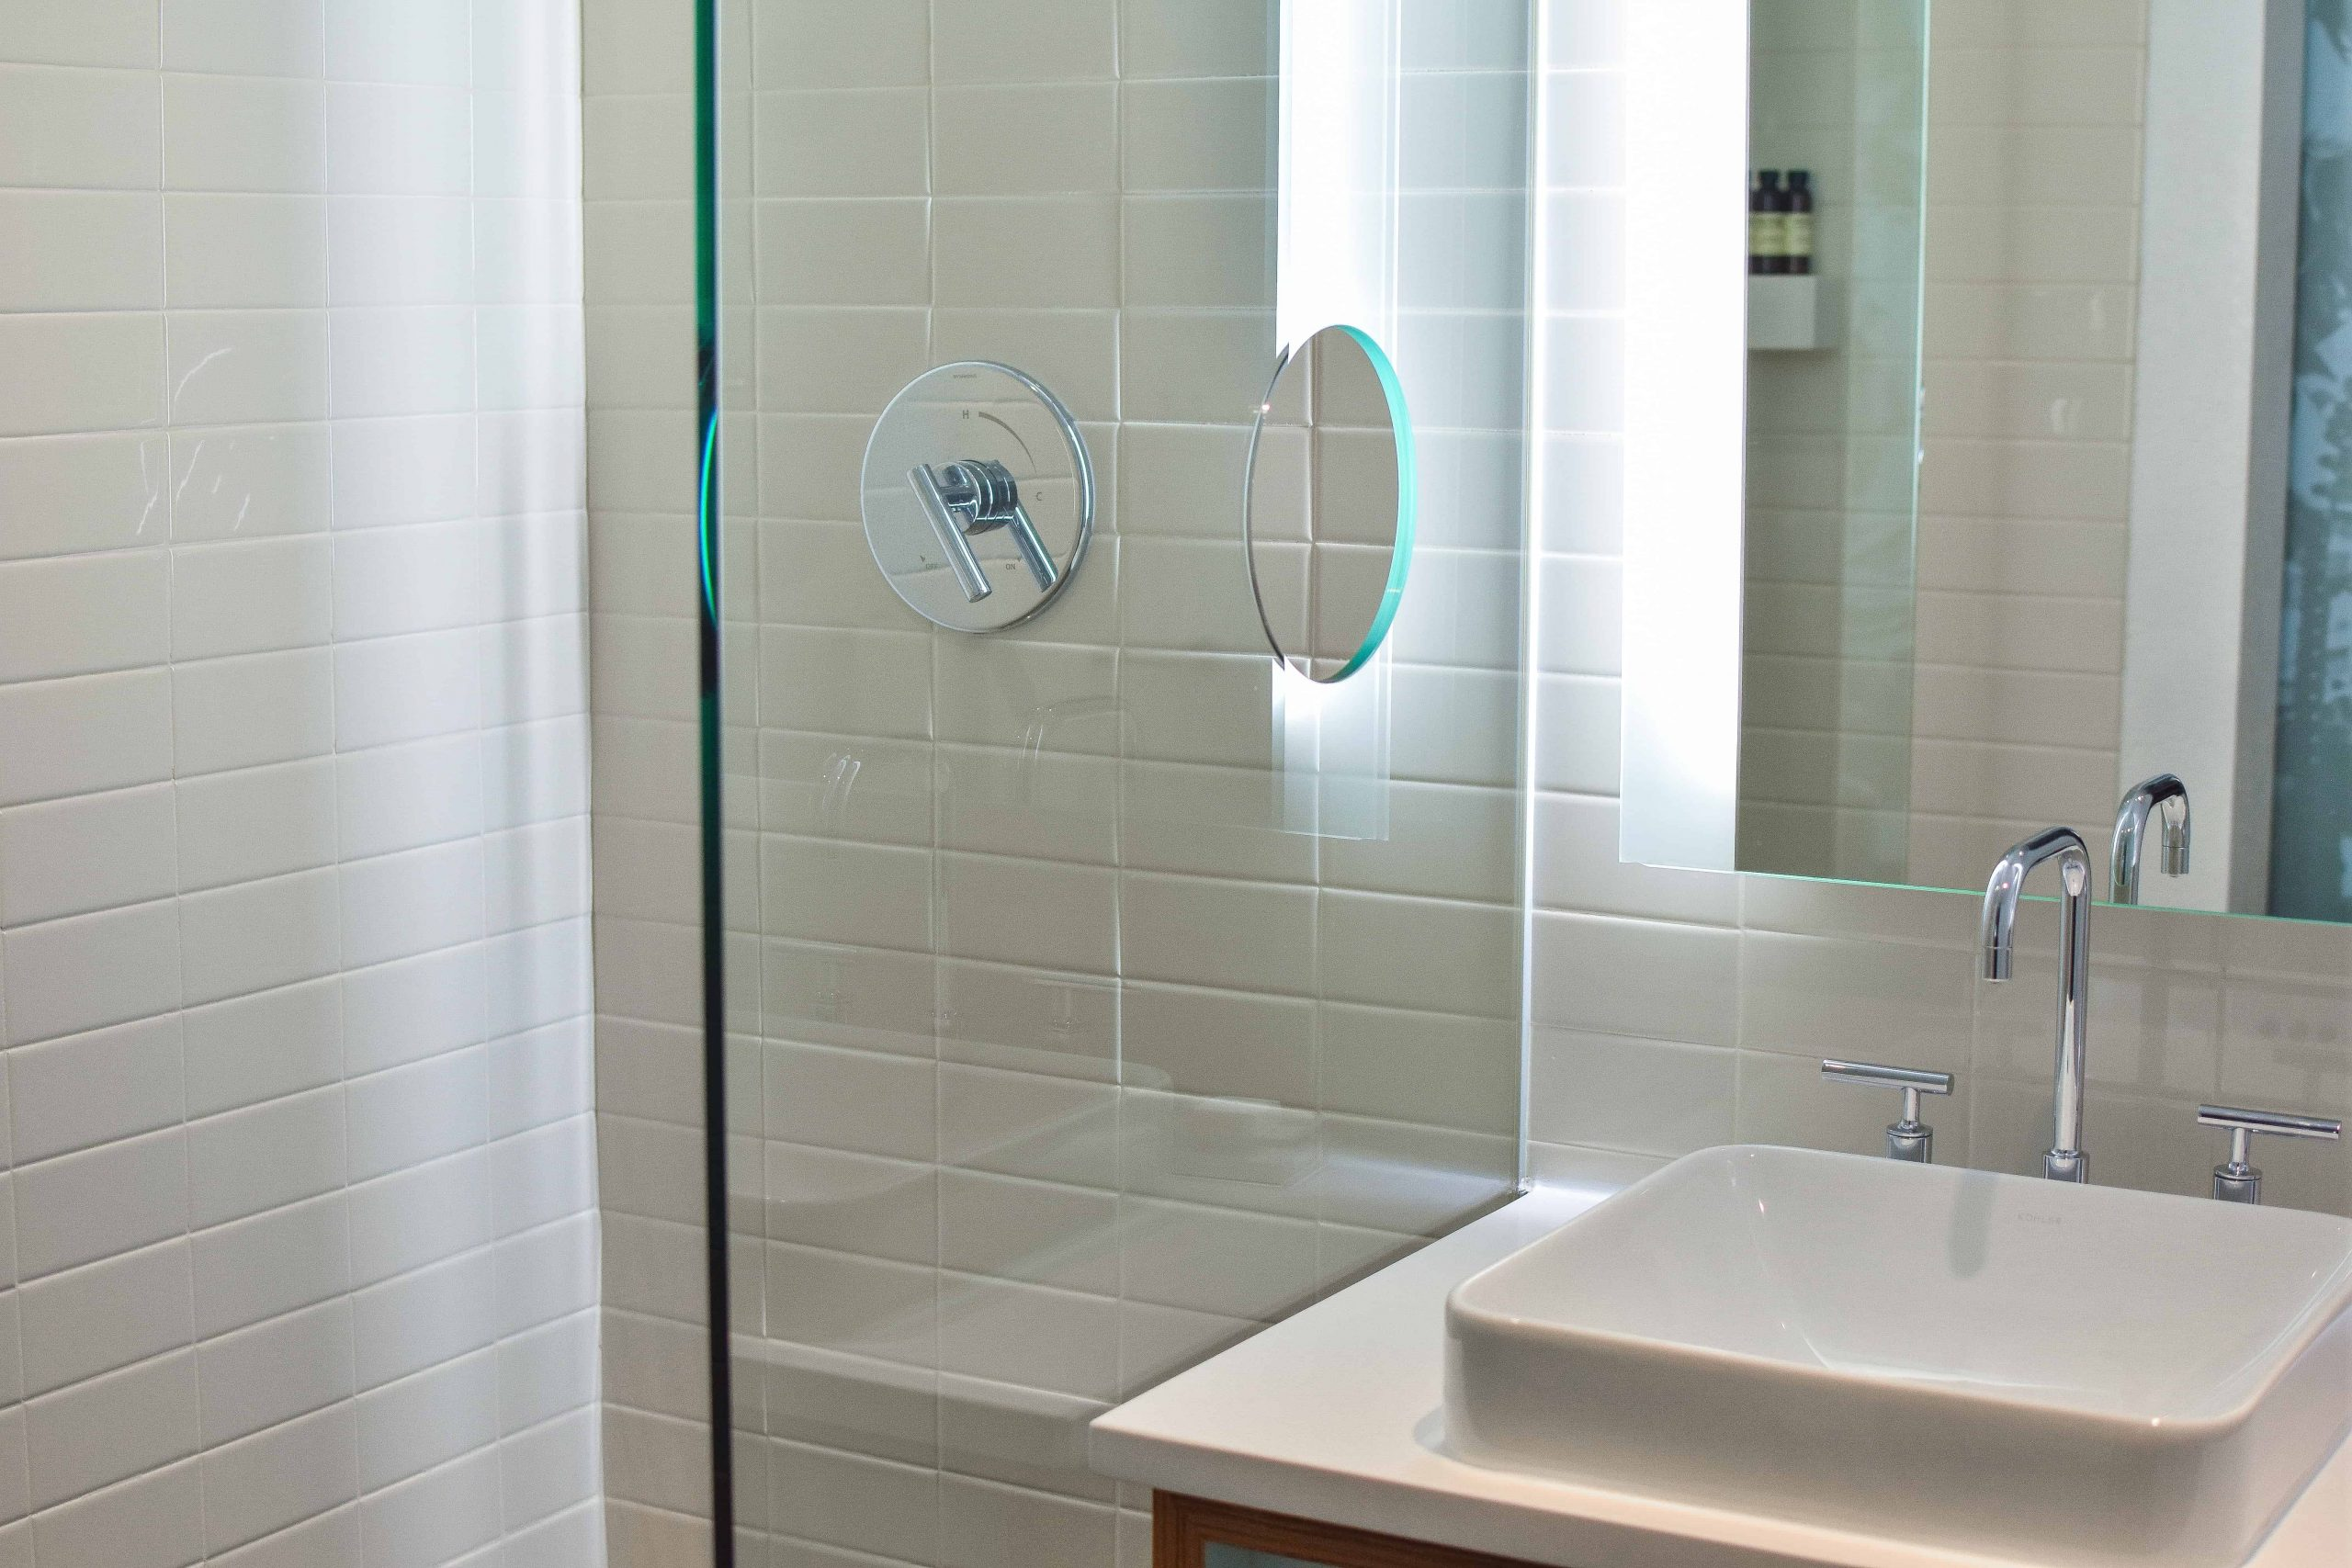 A Hotel Bathroom Hack For Your Toothbrush